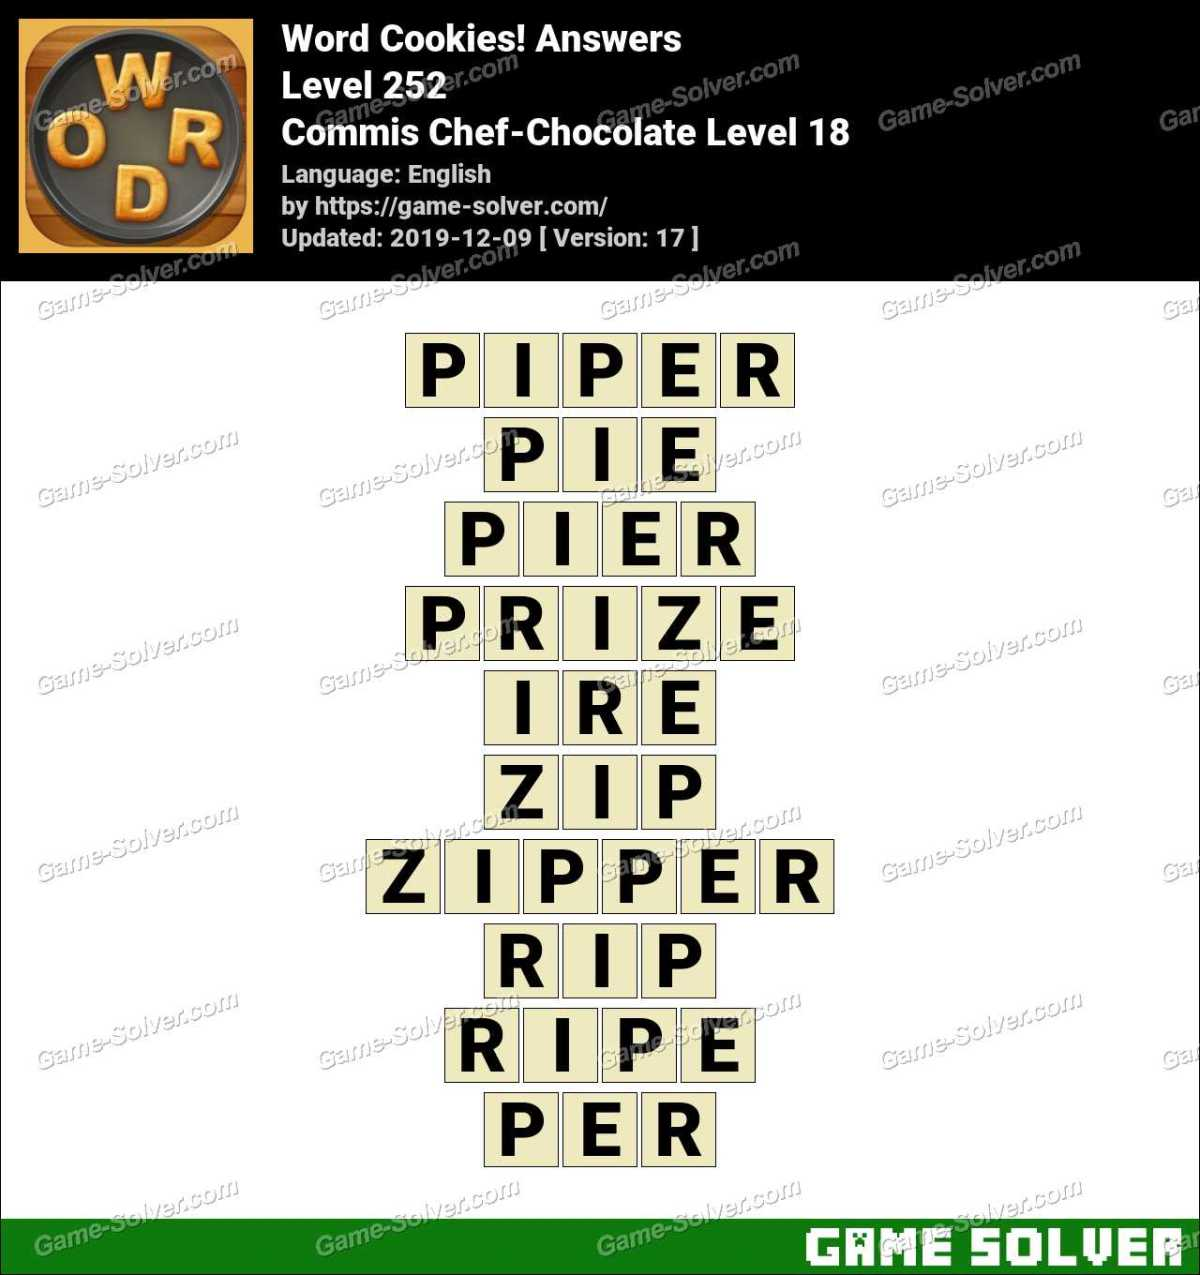 Word Cookies Commis Chef-Chocolate Level 18 Answers